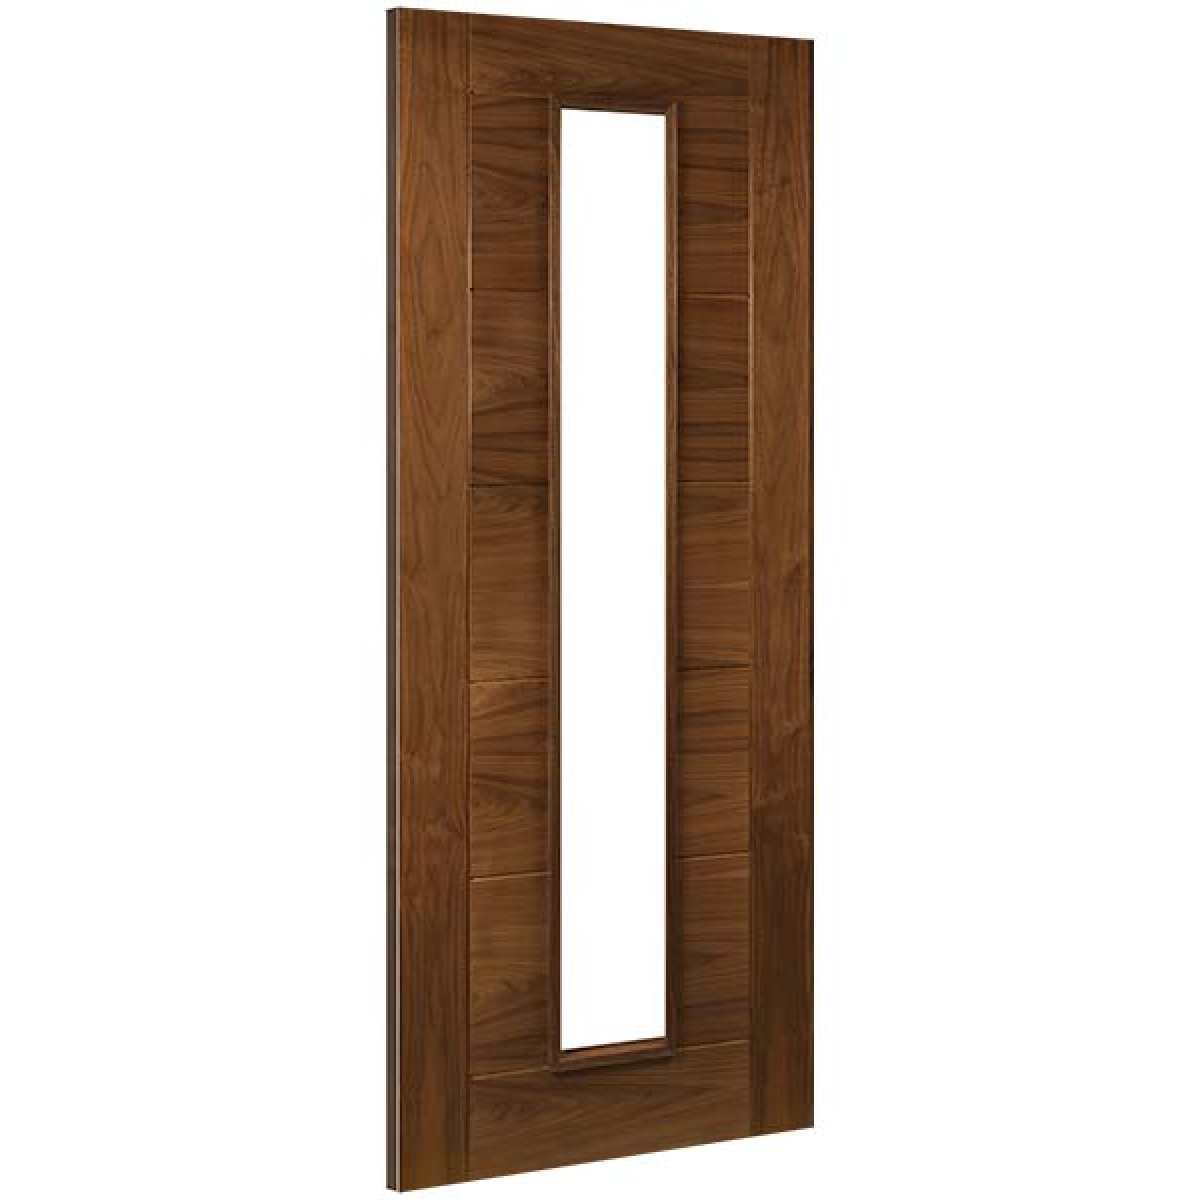 seville walnut glazed angled websters Image by Websters Timber